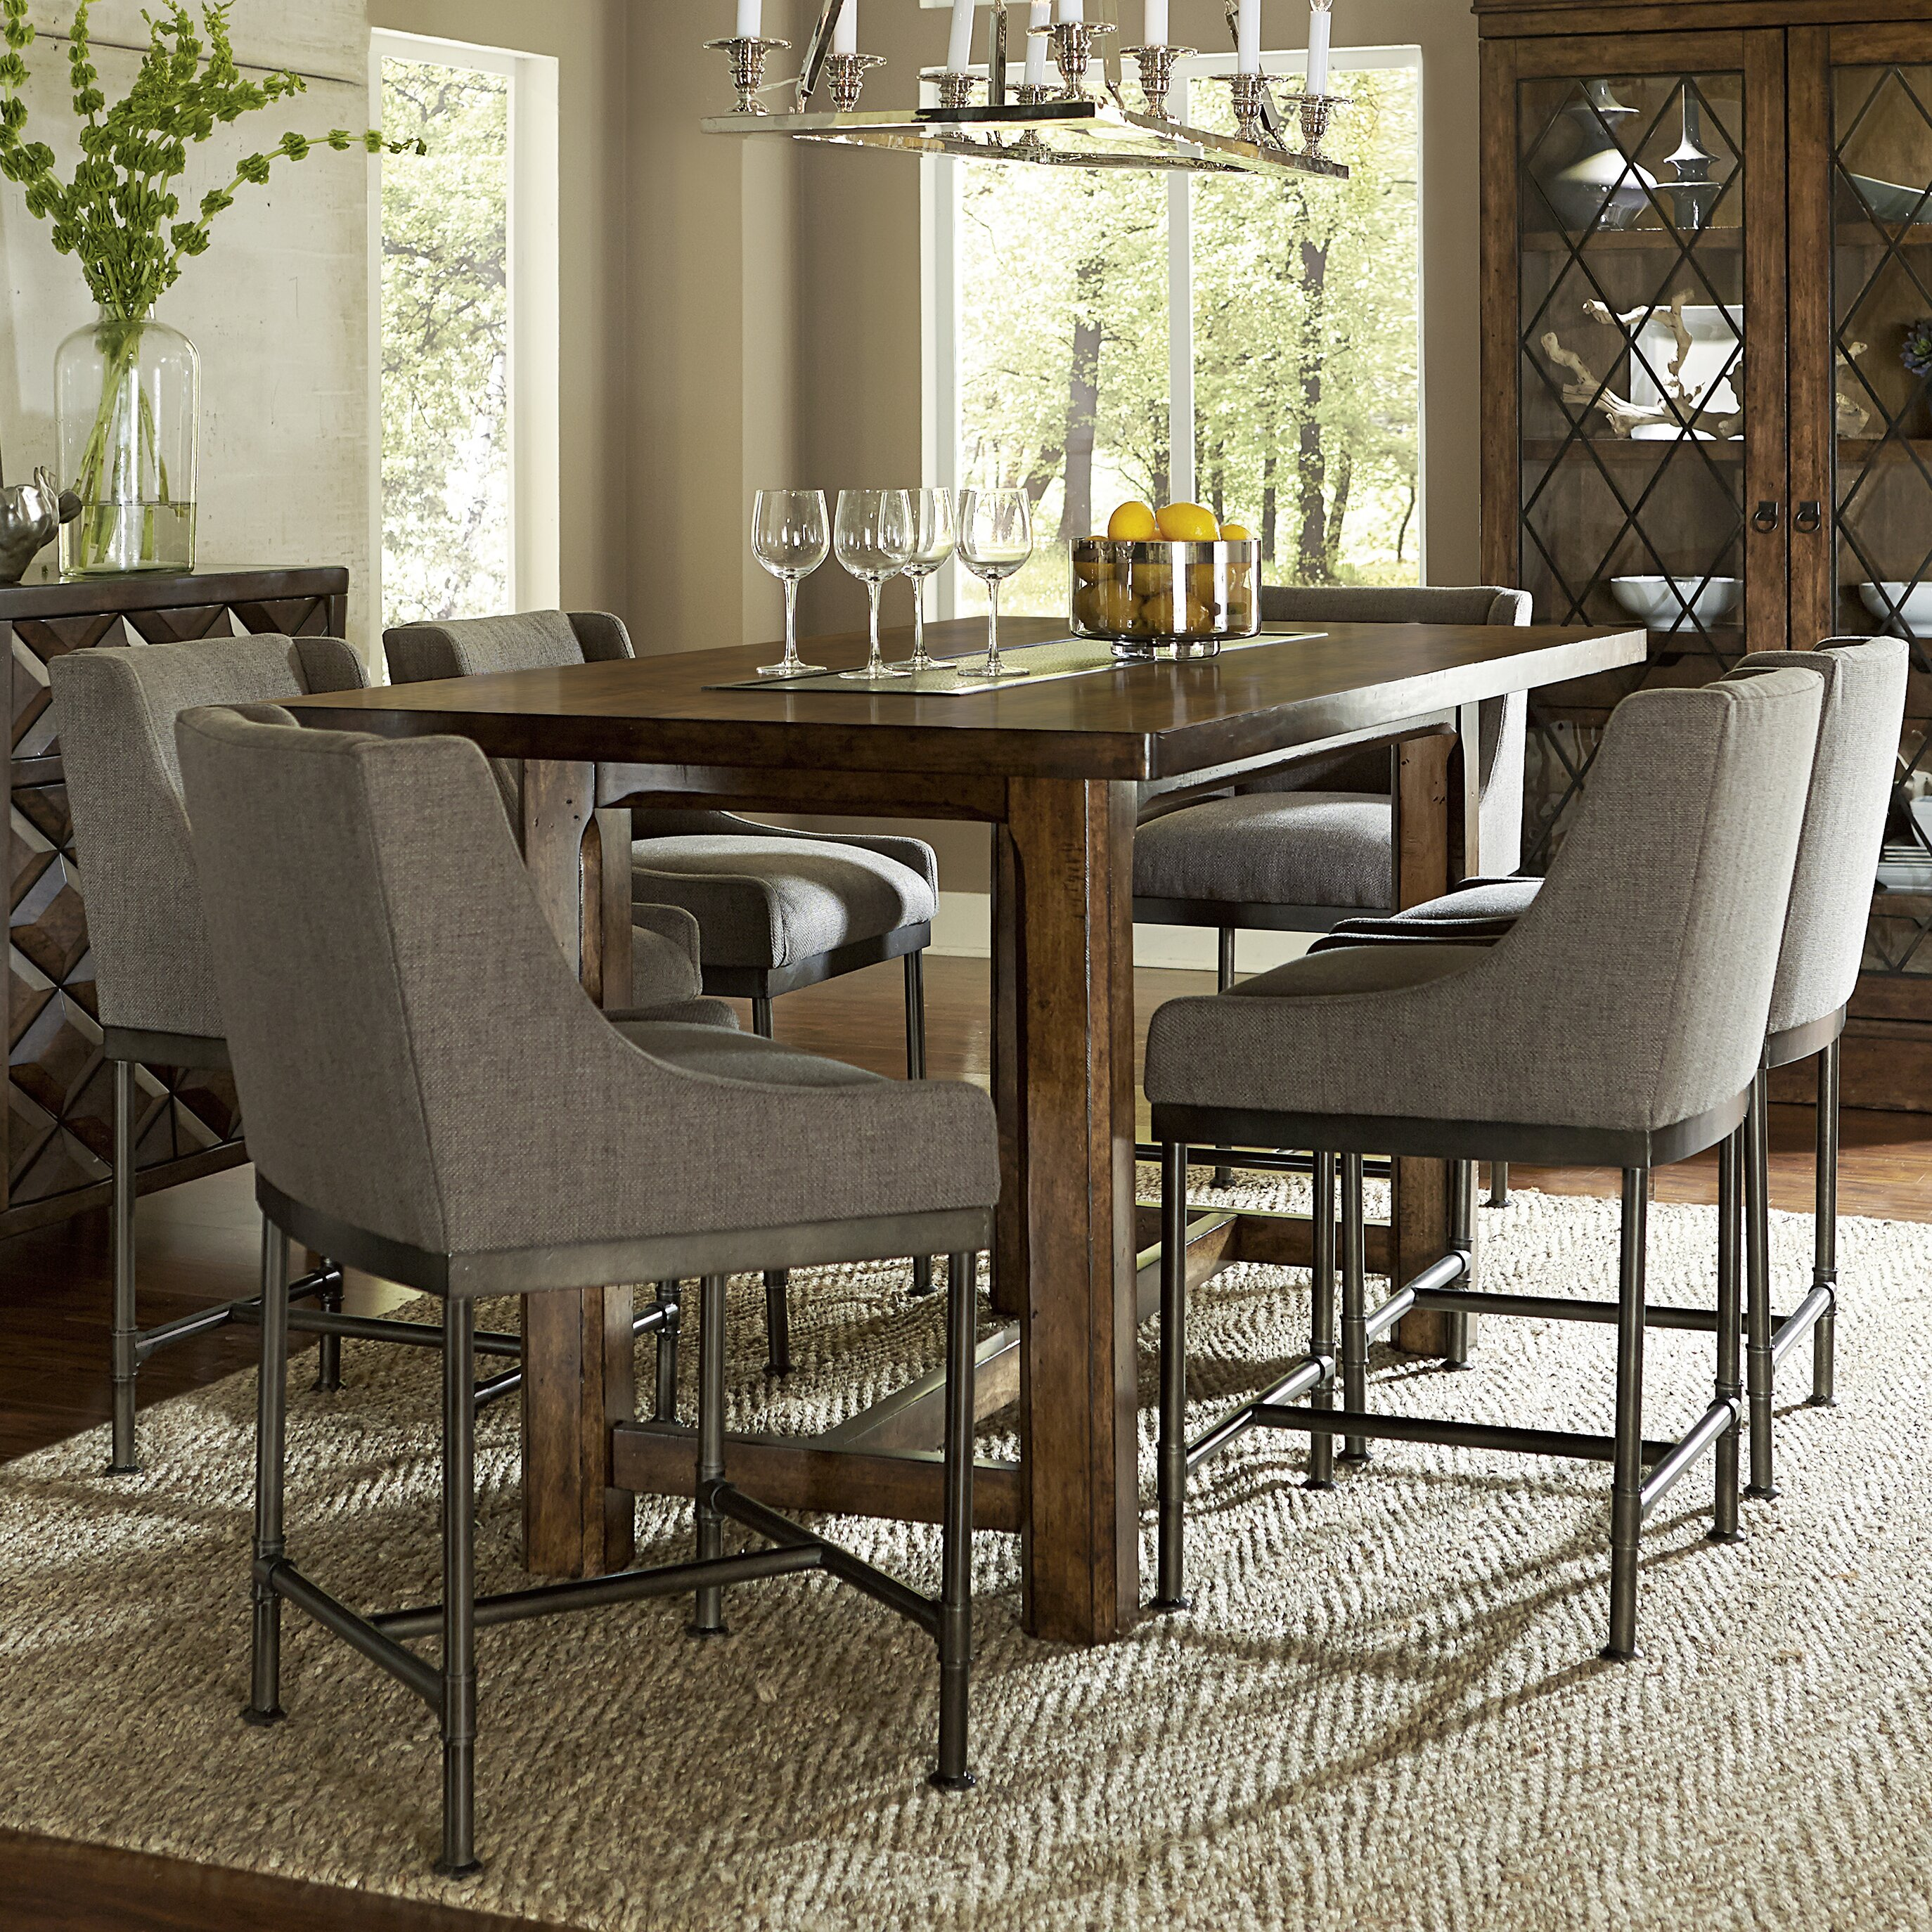 Loon peak segula counter height dining table wayfair for Best dining room table height